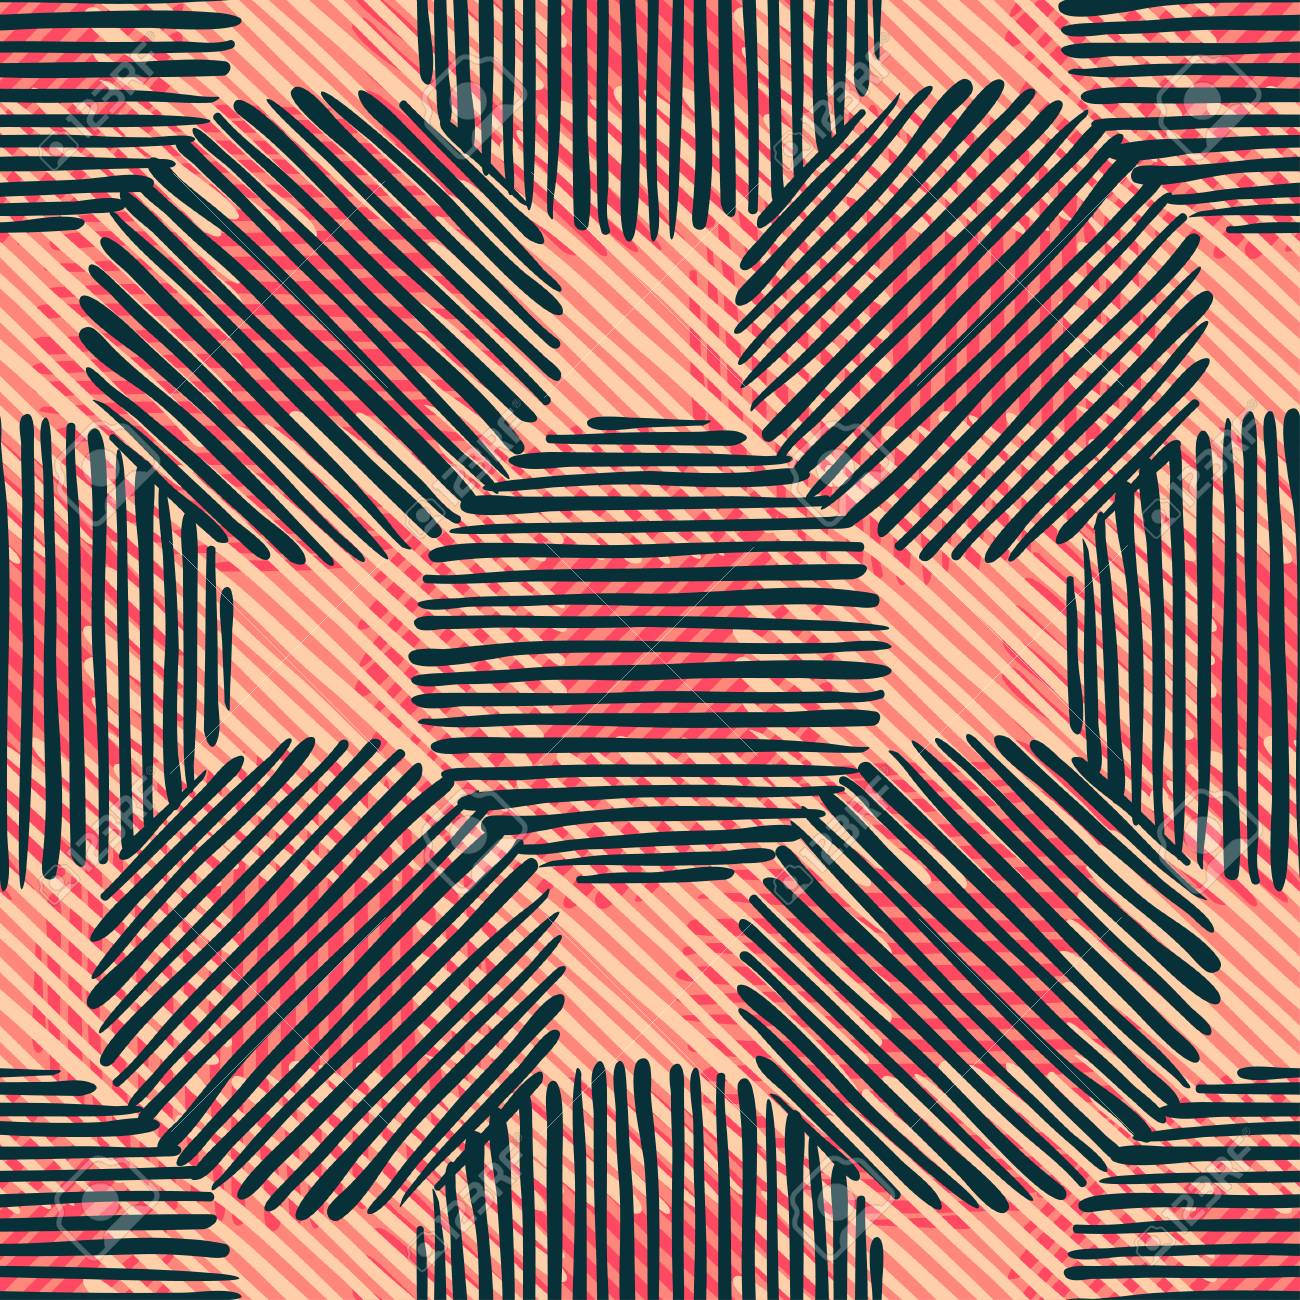 Abstract Ikat And Boho Style Handcraft Fabric Pattern For Girls